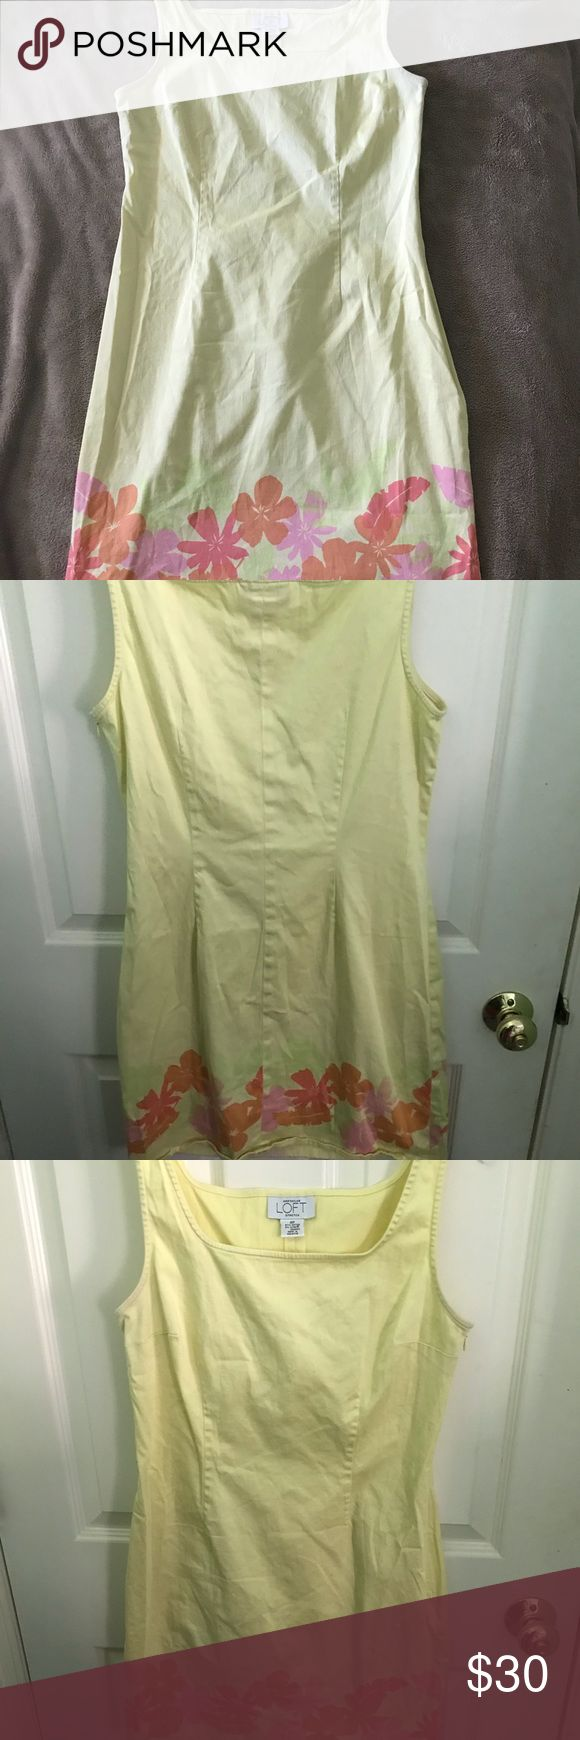 Yellow dress with floral pattern Pale yellow dress with orange, pink, and green floral pattern at the bottom of the skirt. Size 8 petite. 97% cotton, 3% lycra spandex. Ann Taylor Dresses